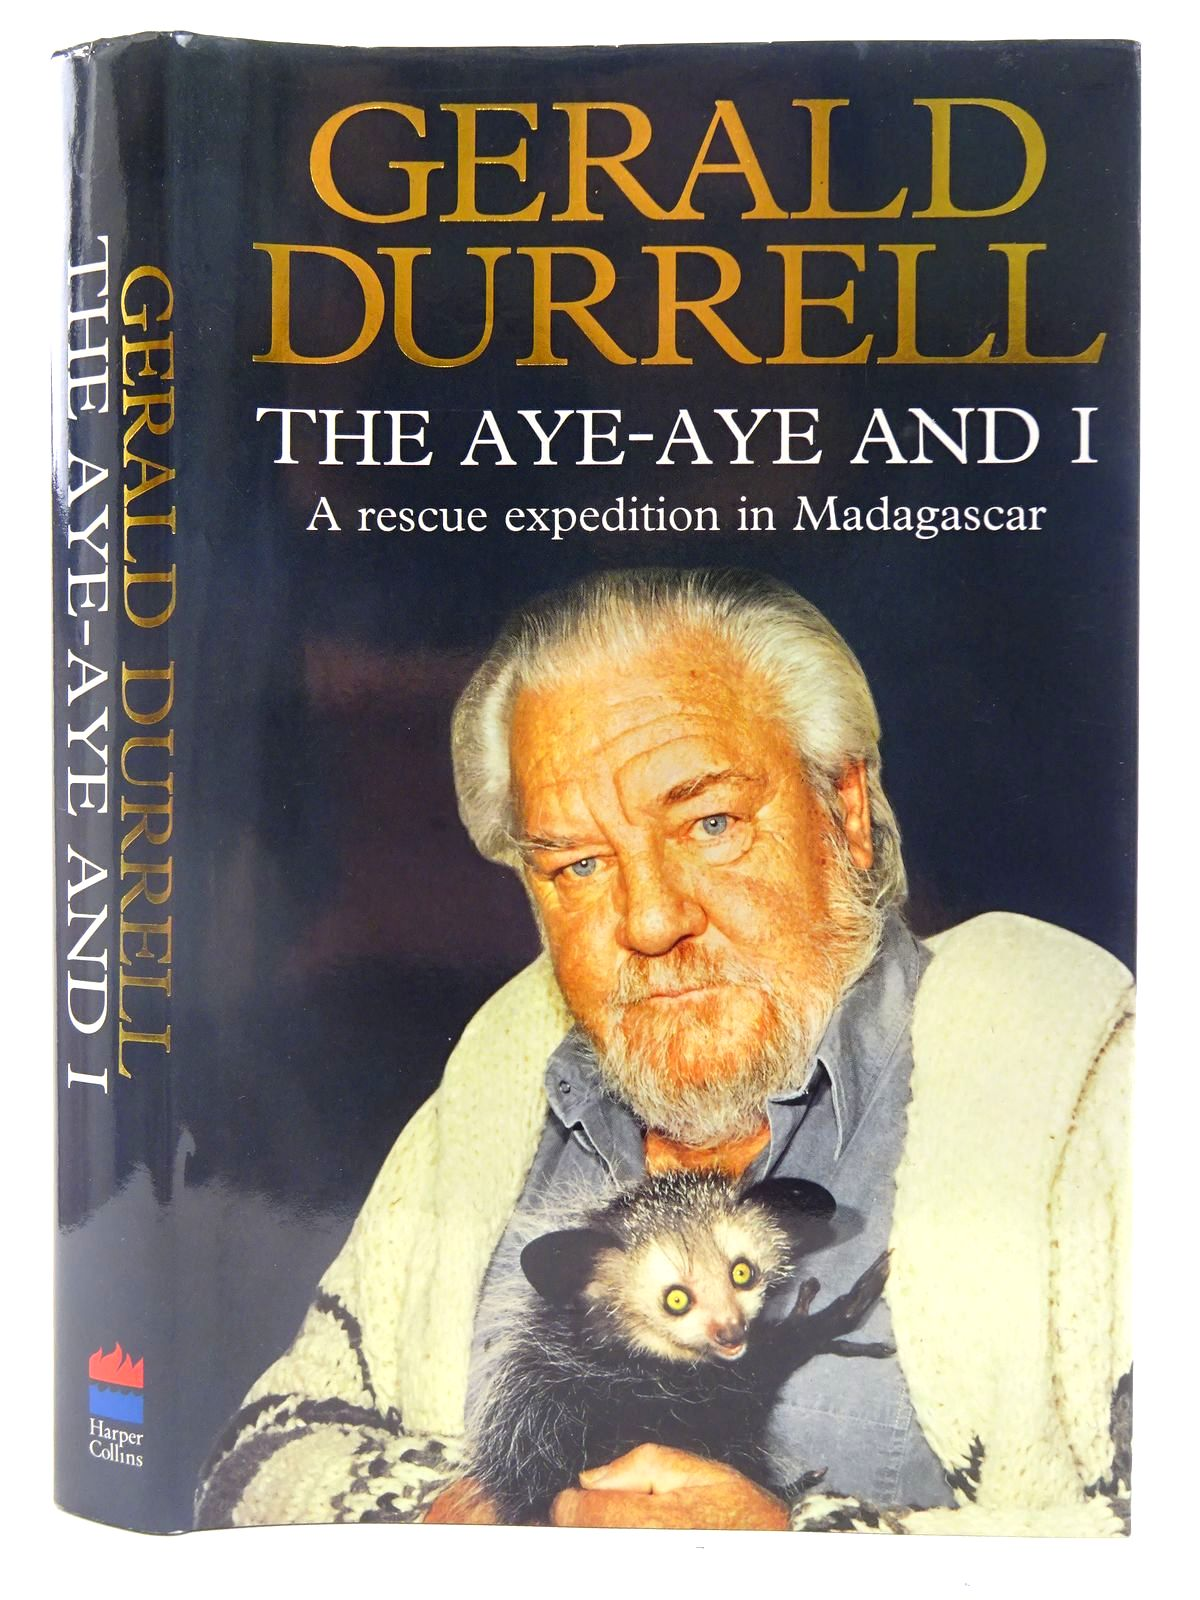 Photo of THE AYE-AYE AND I written by Durrell, Gerald published by Harper Collins (STOCK CODE: 2128276)  for sale by Stella & Rose's Books